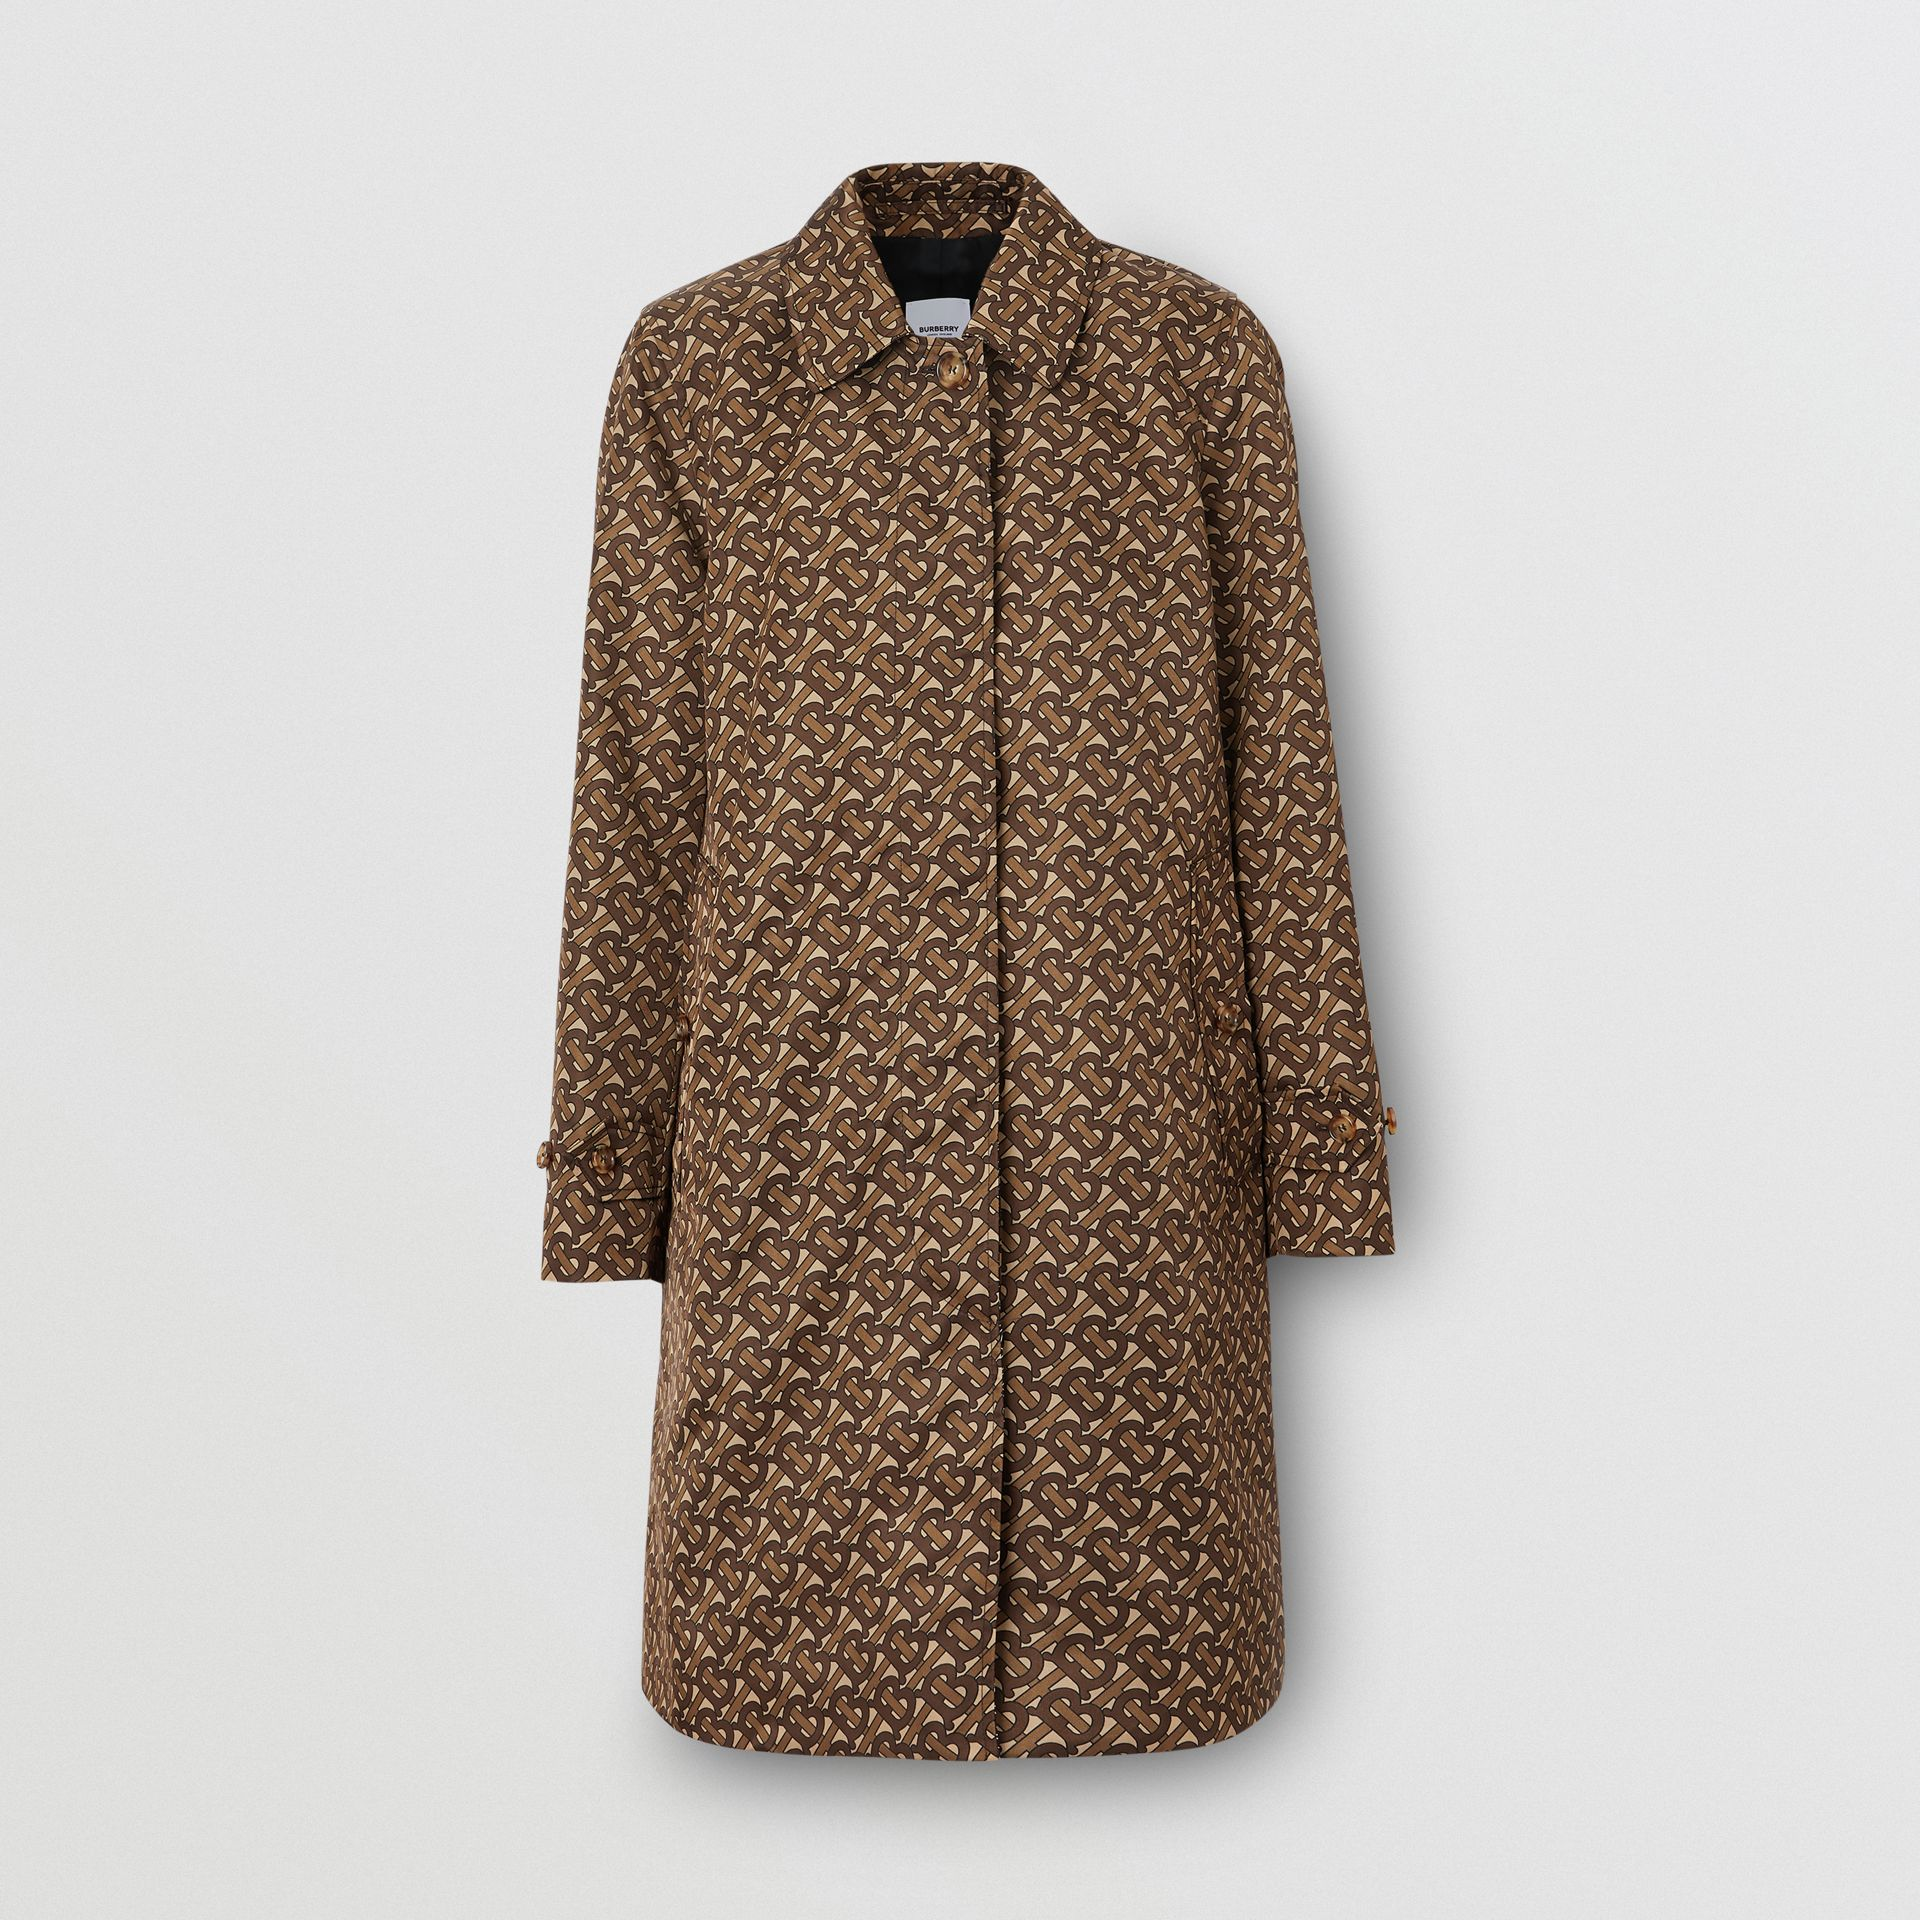 Monogram Stripe Print Nylon Car Coat in Bridle Brown - Women | Burberry - gallery image 3